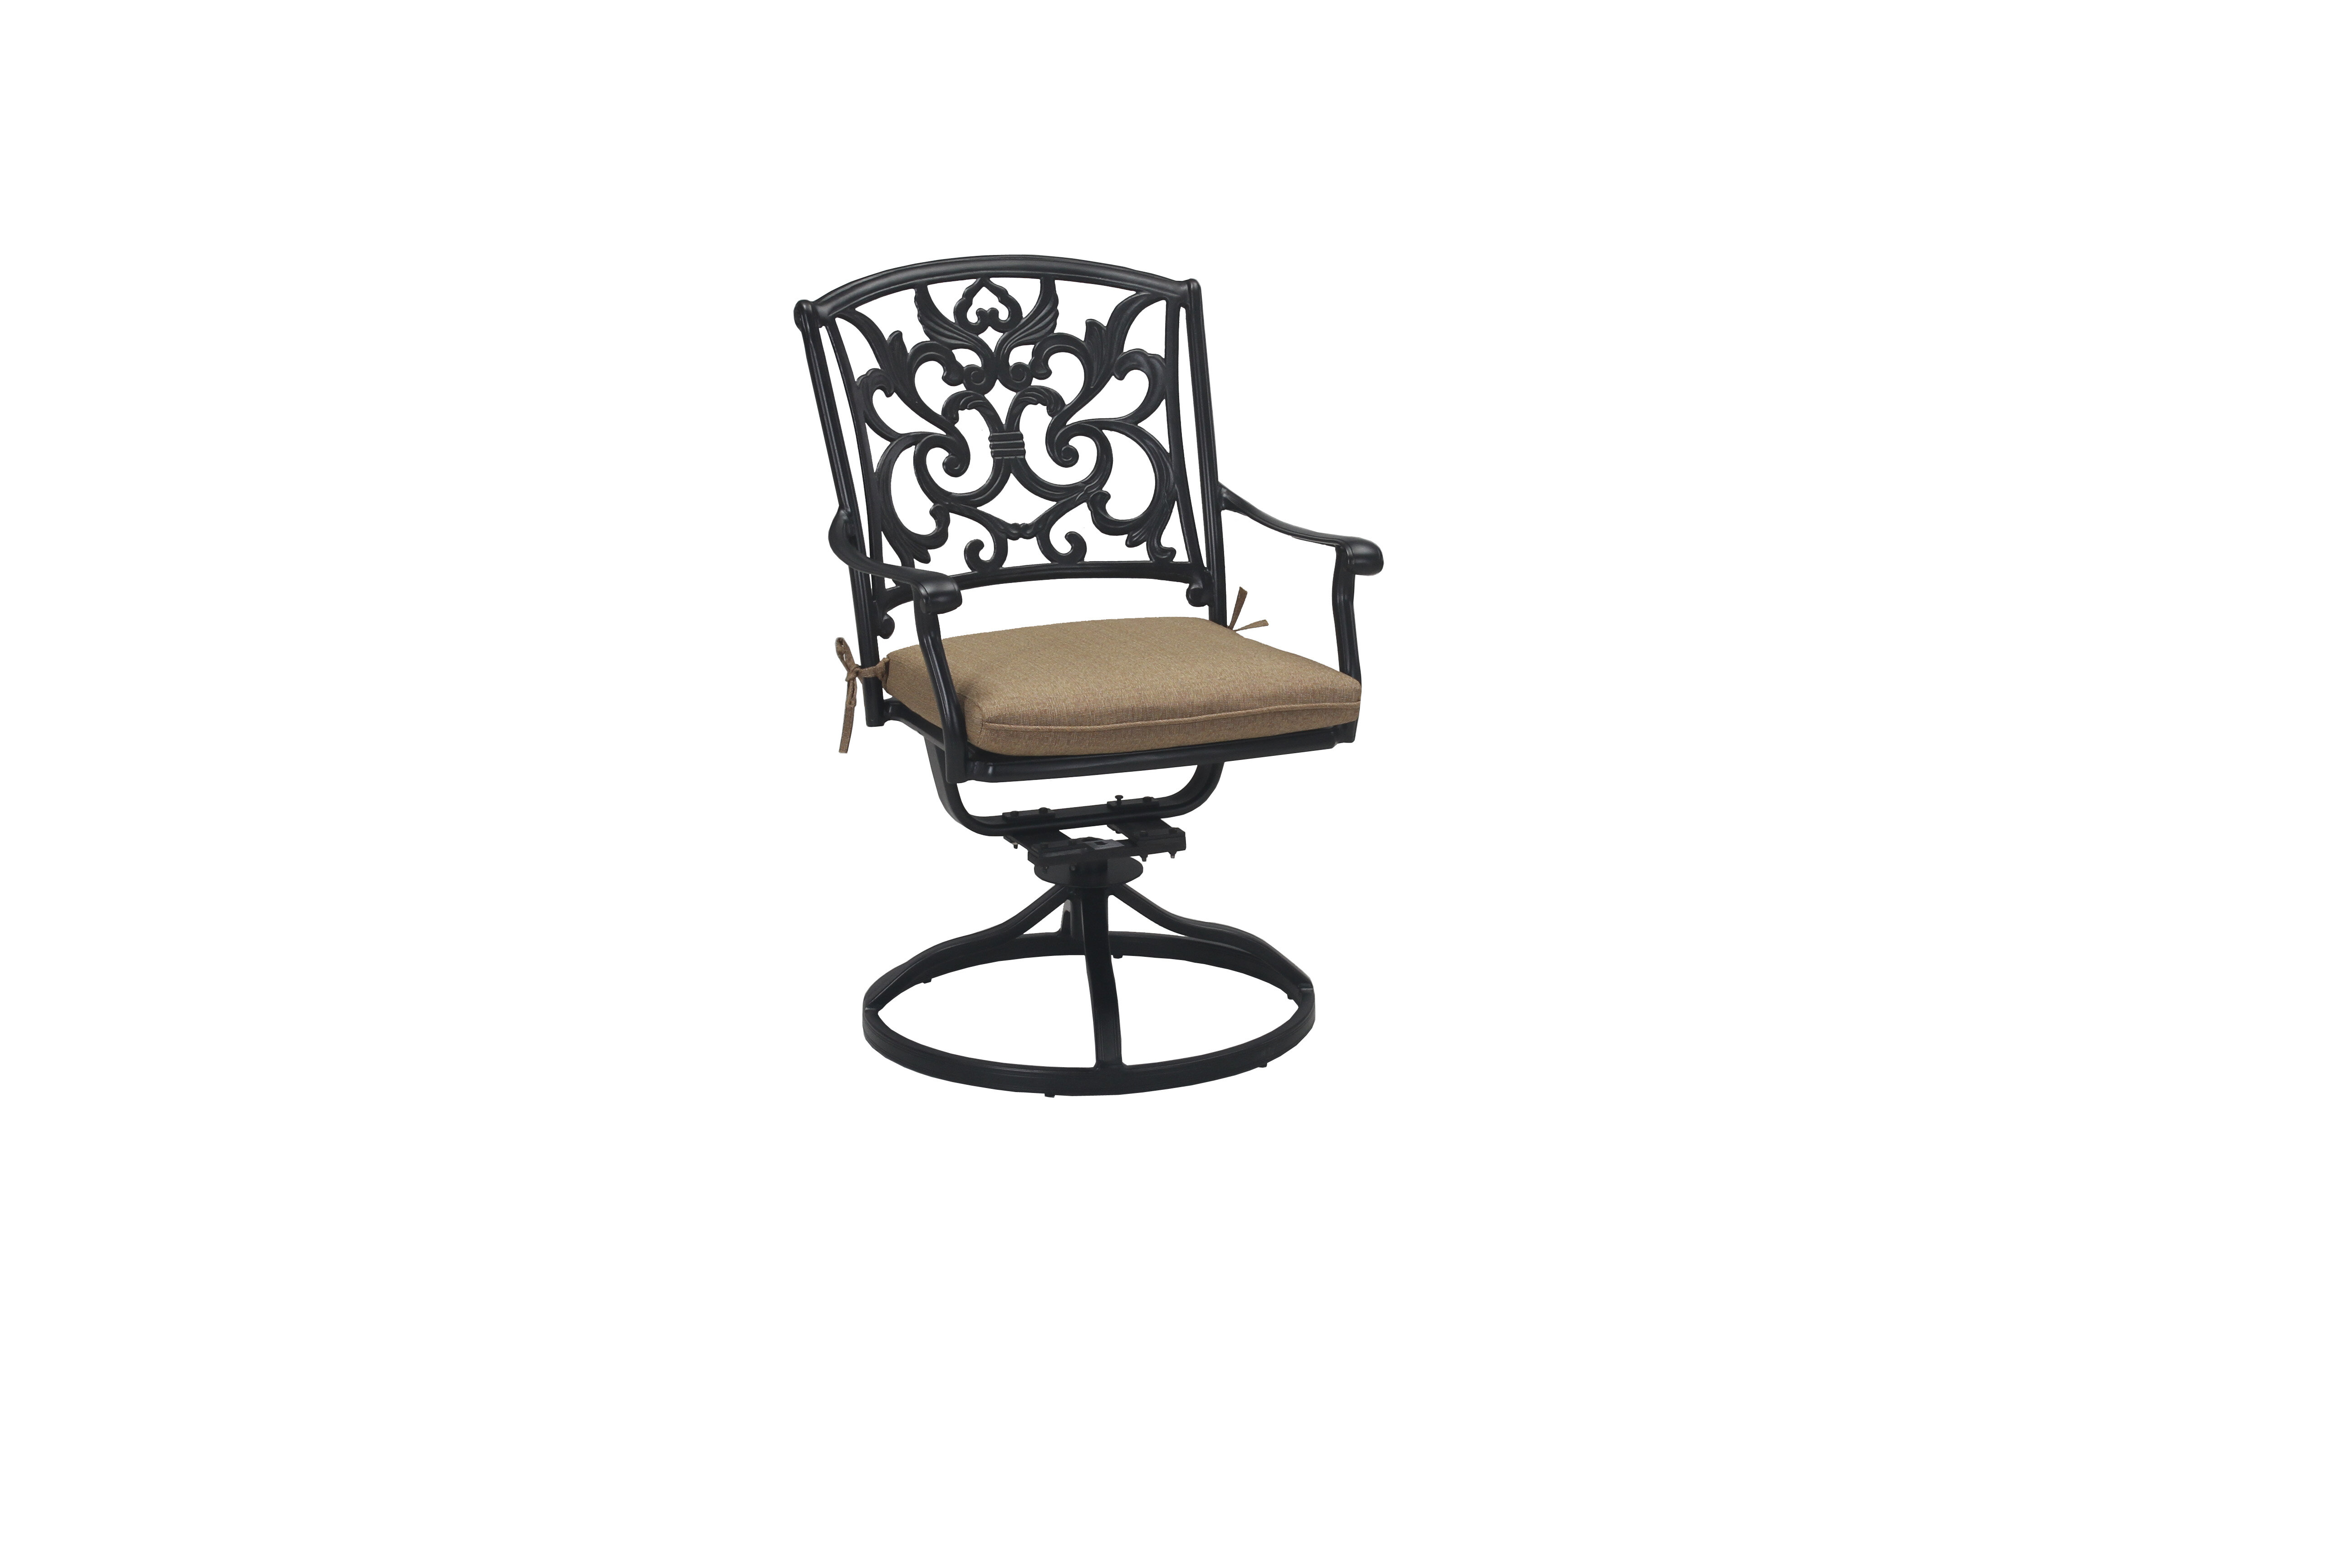 Cardin Swivel Rocking Chair with Cushions